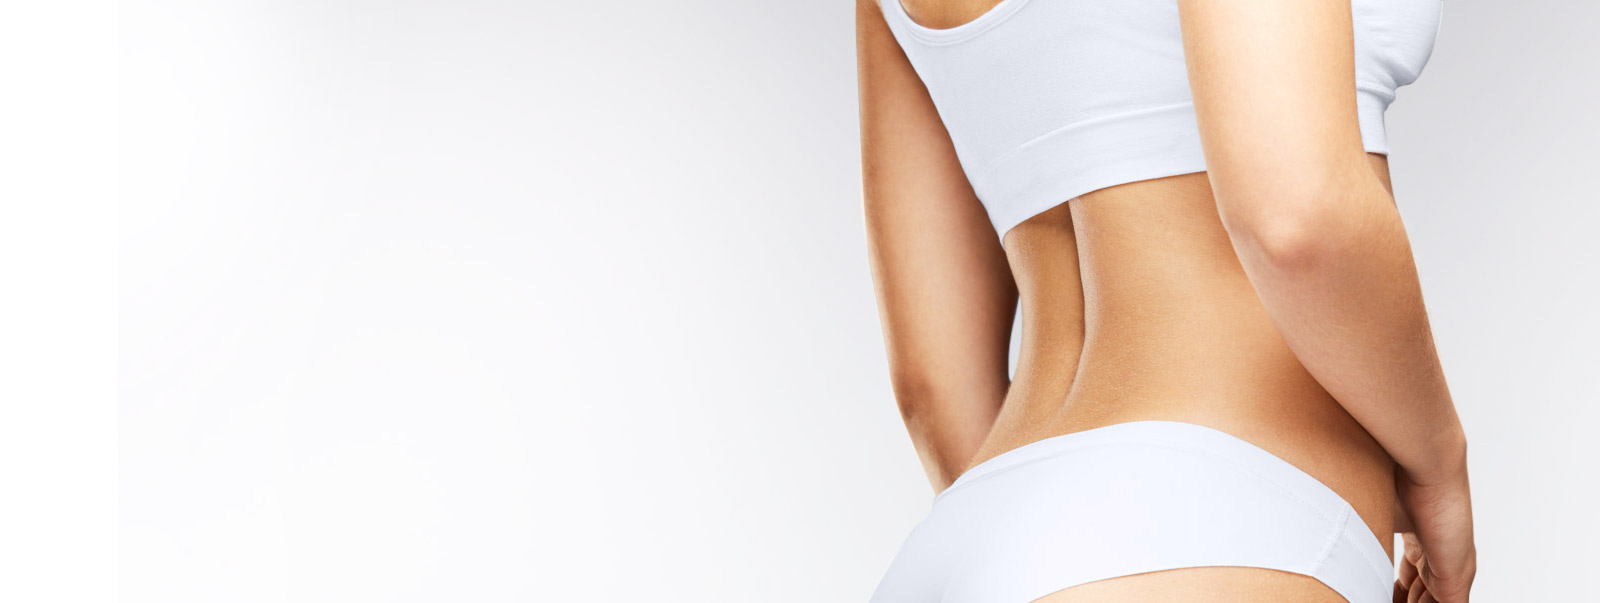 Sculpsure in San Antonio